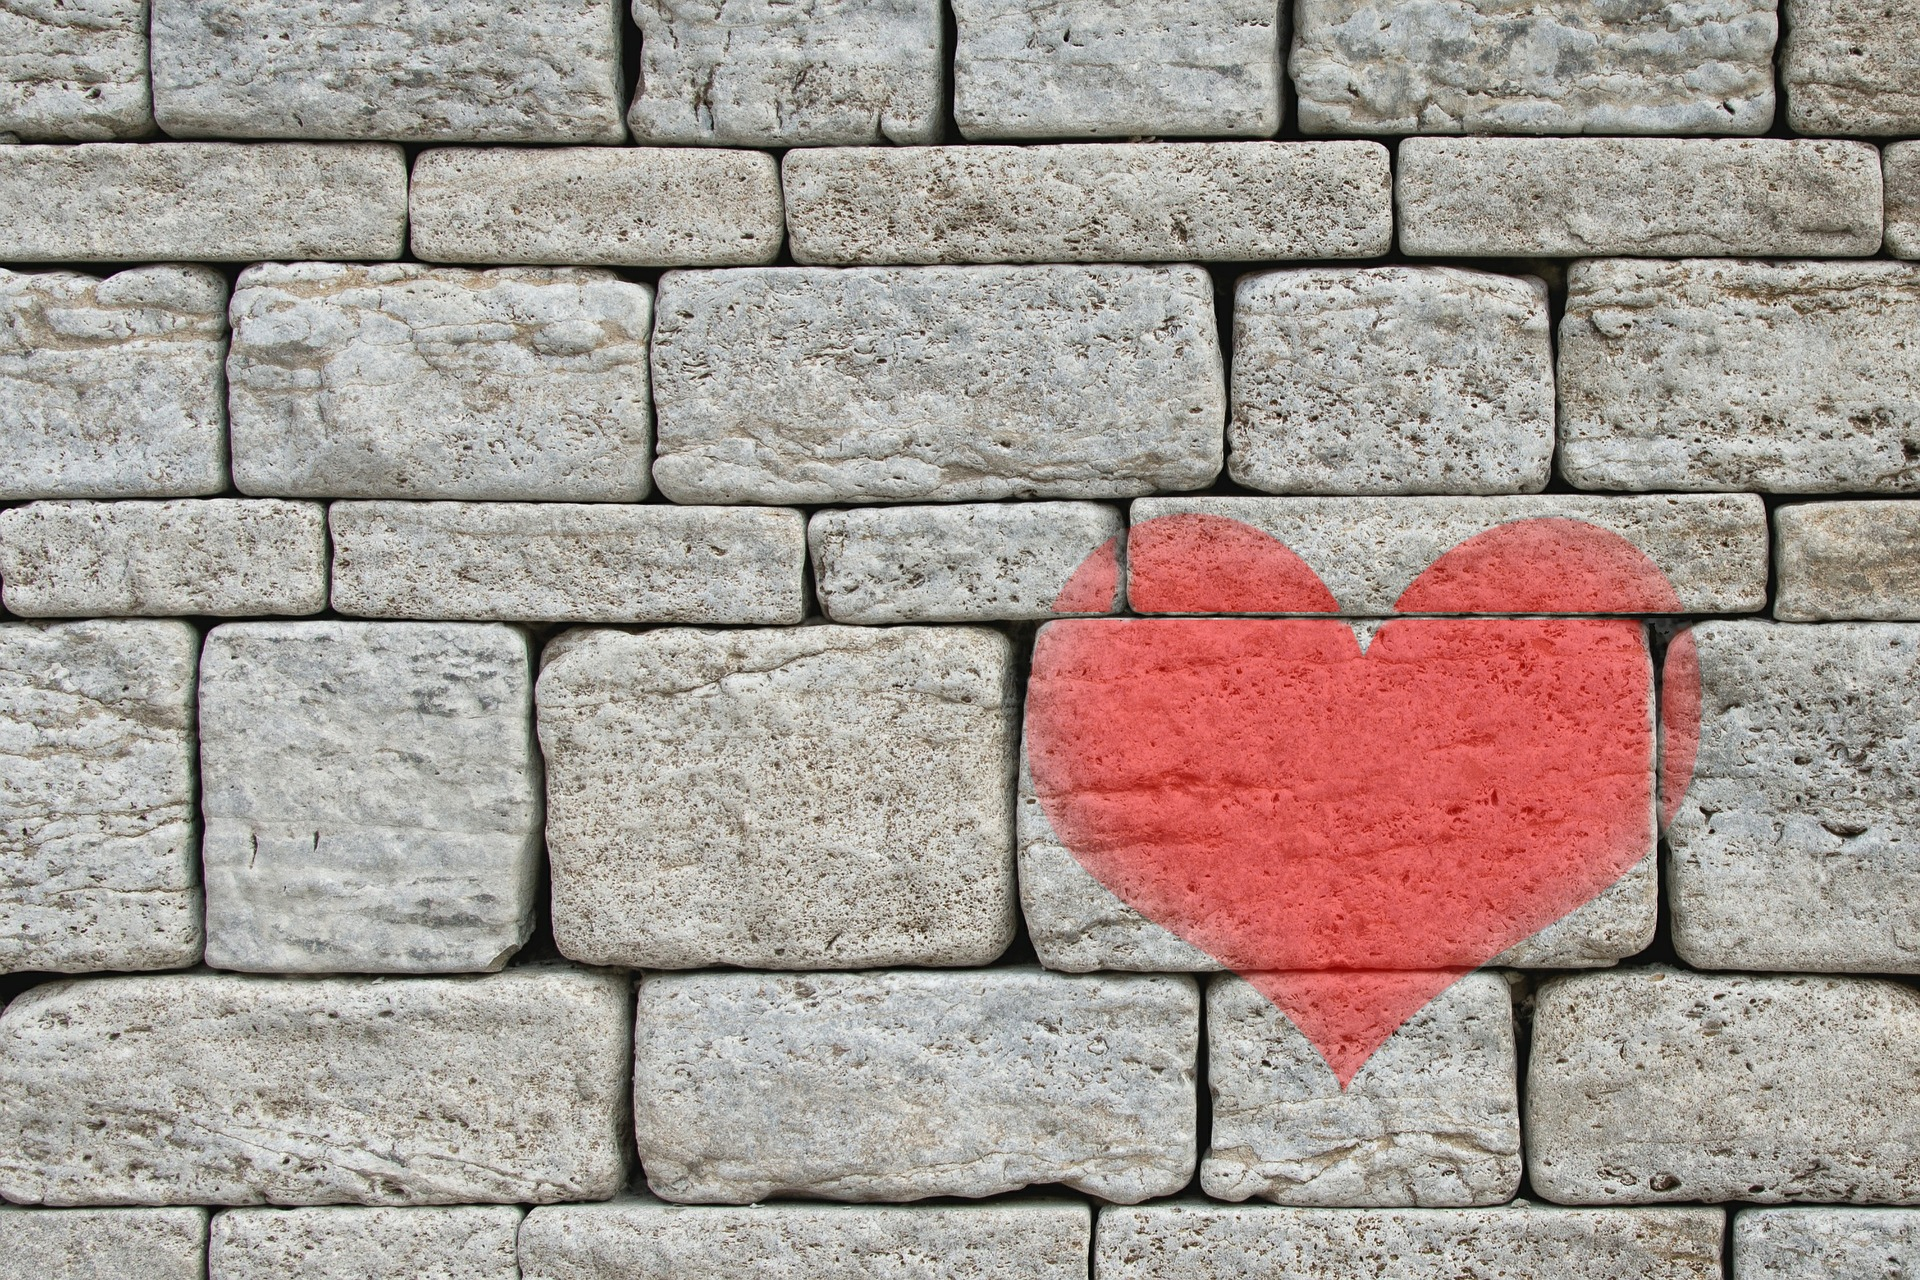 a stone faced brick wall with a red heart painted on it